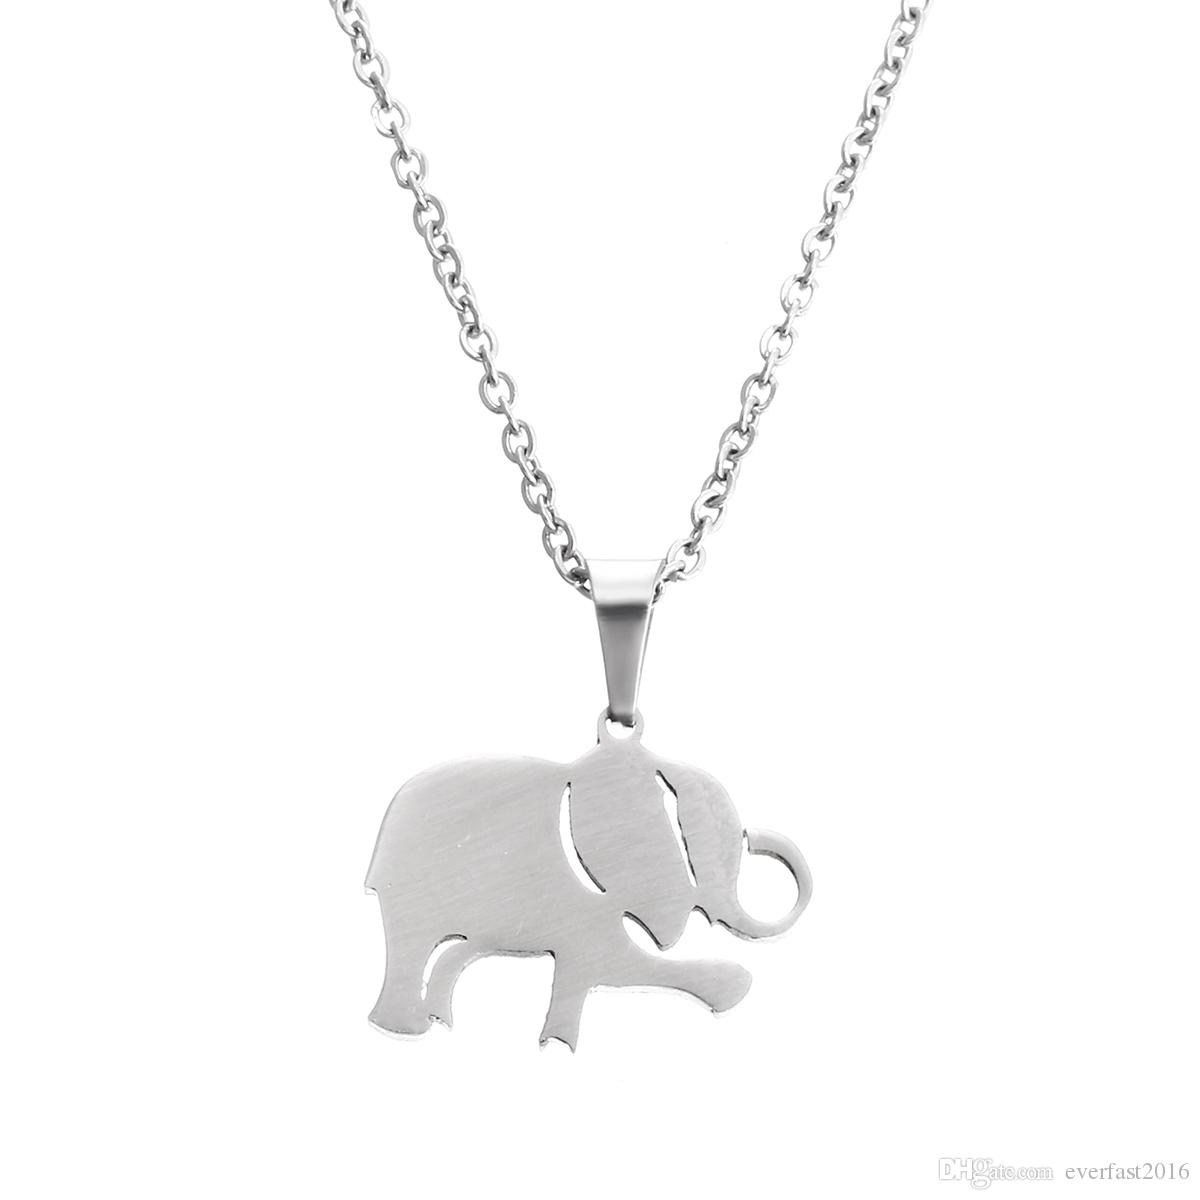 8075cd7a8c0e0 EVERFAST Fashion Stainless Steel Necklace, Lovely Dancing Elephant Pendant  Animal Necklaces Women Kids Long Chain Party Gift SN036